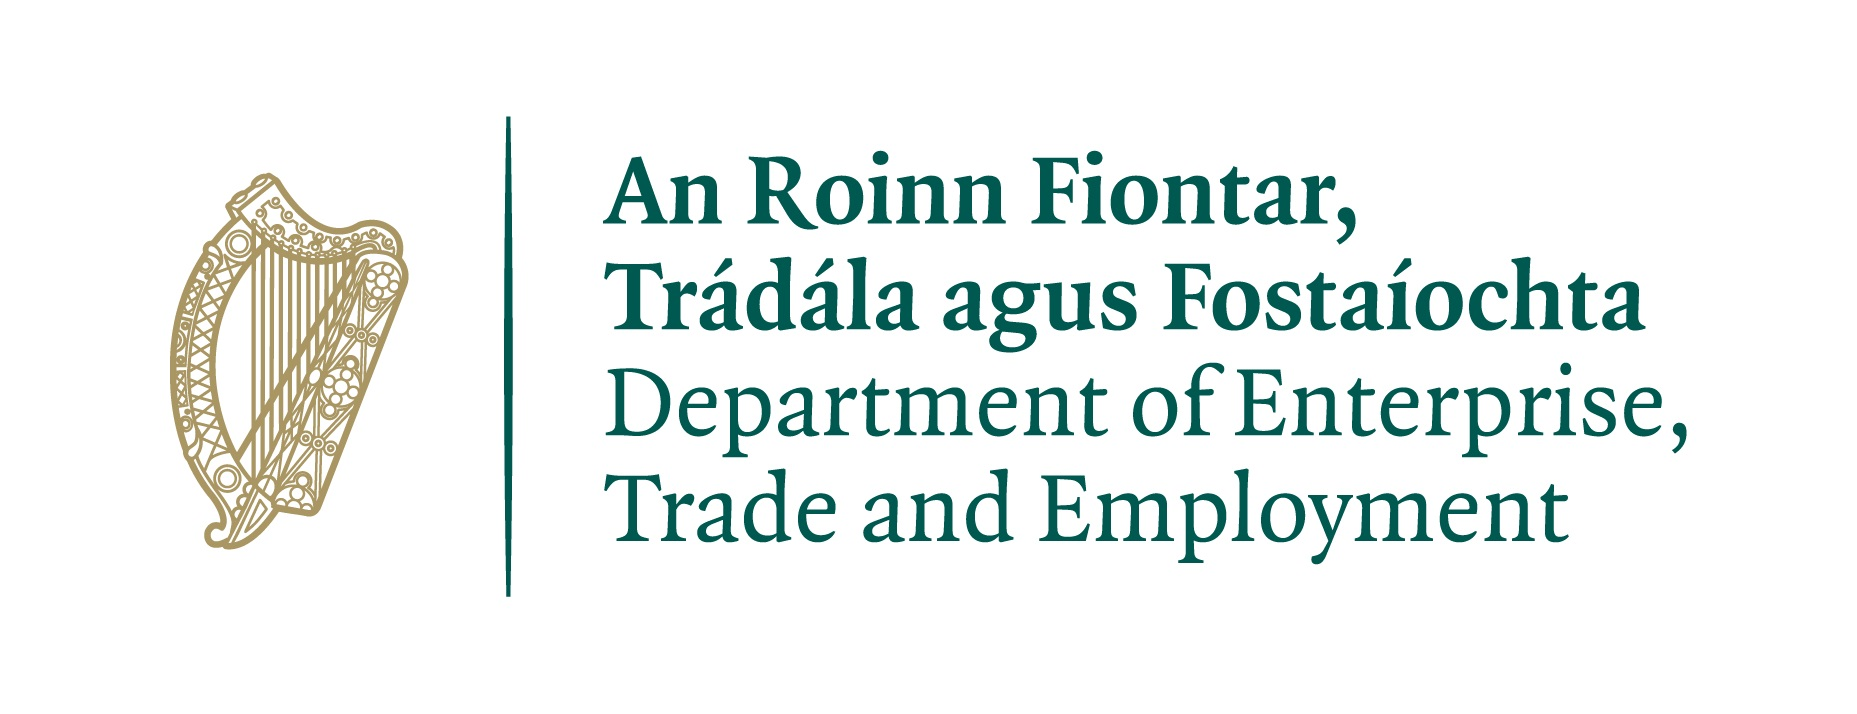 Department of Enterprise, Trade and Employment logo